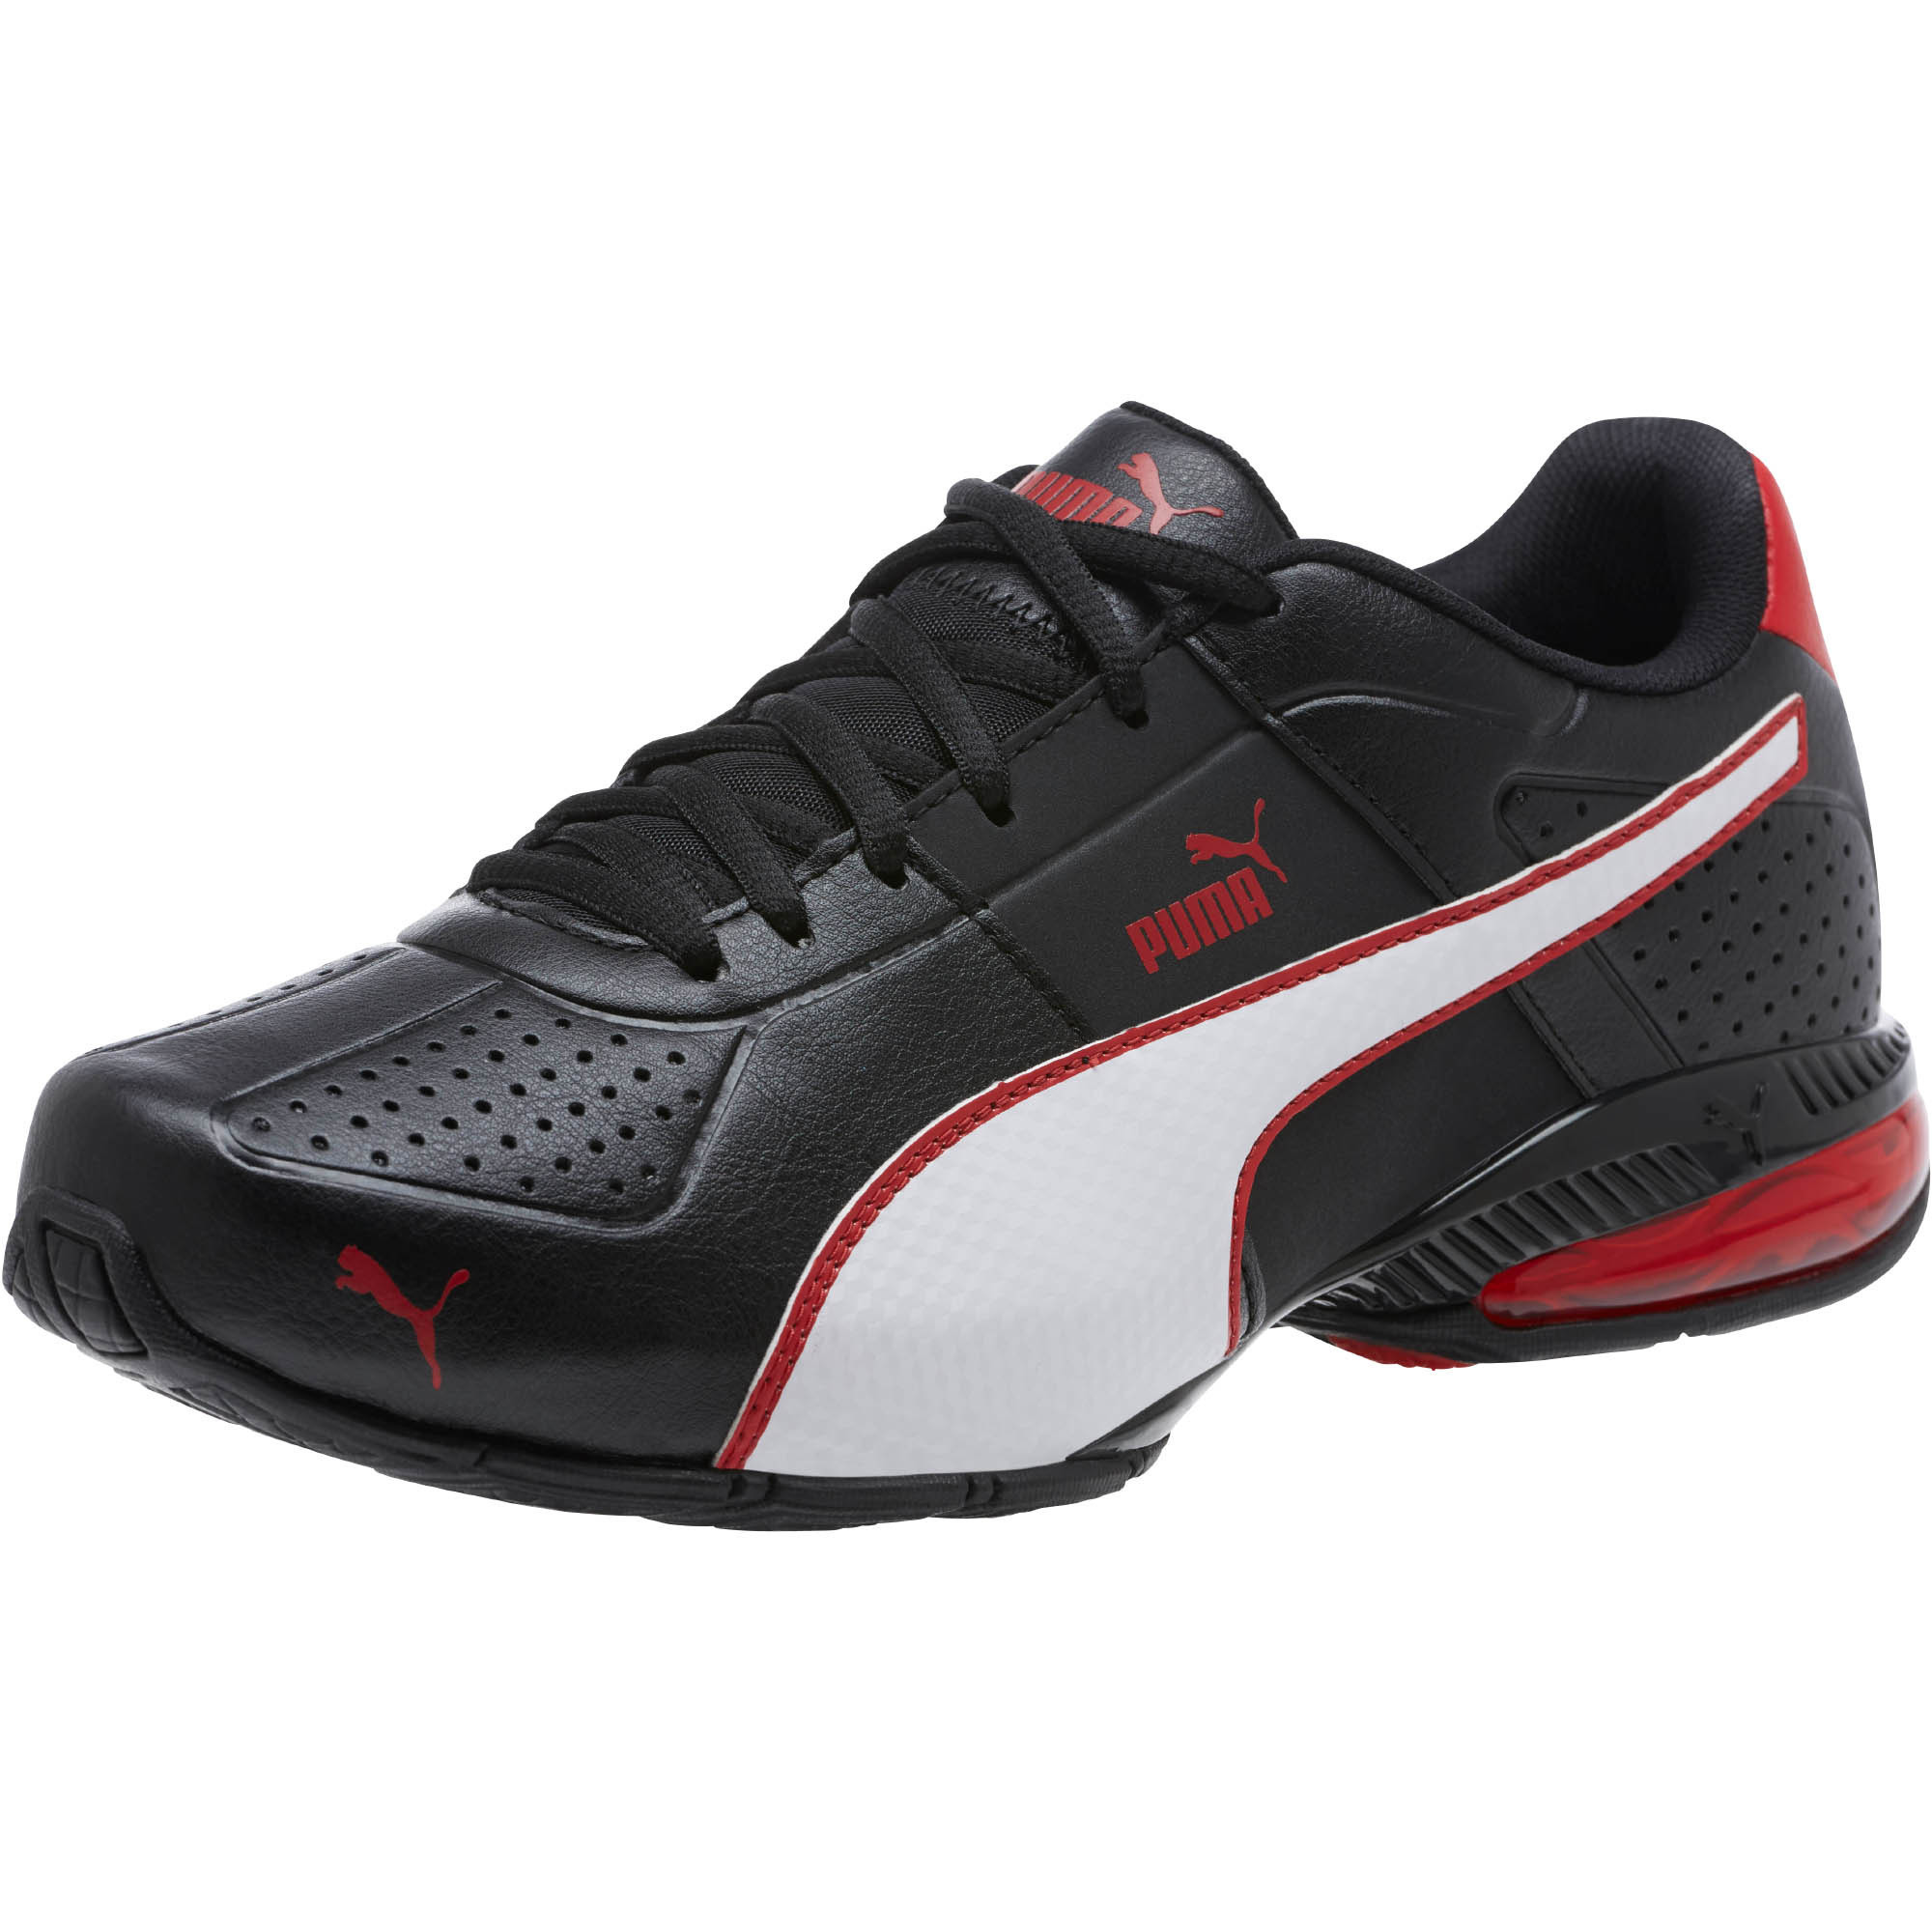 PUMA-CELL-Surin-2-FM-Men-039-s-Running-Shoes-Men-Shoe-Running thumbnail 16